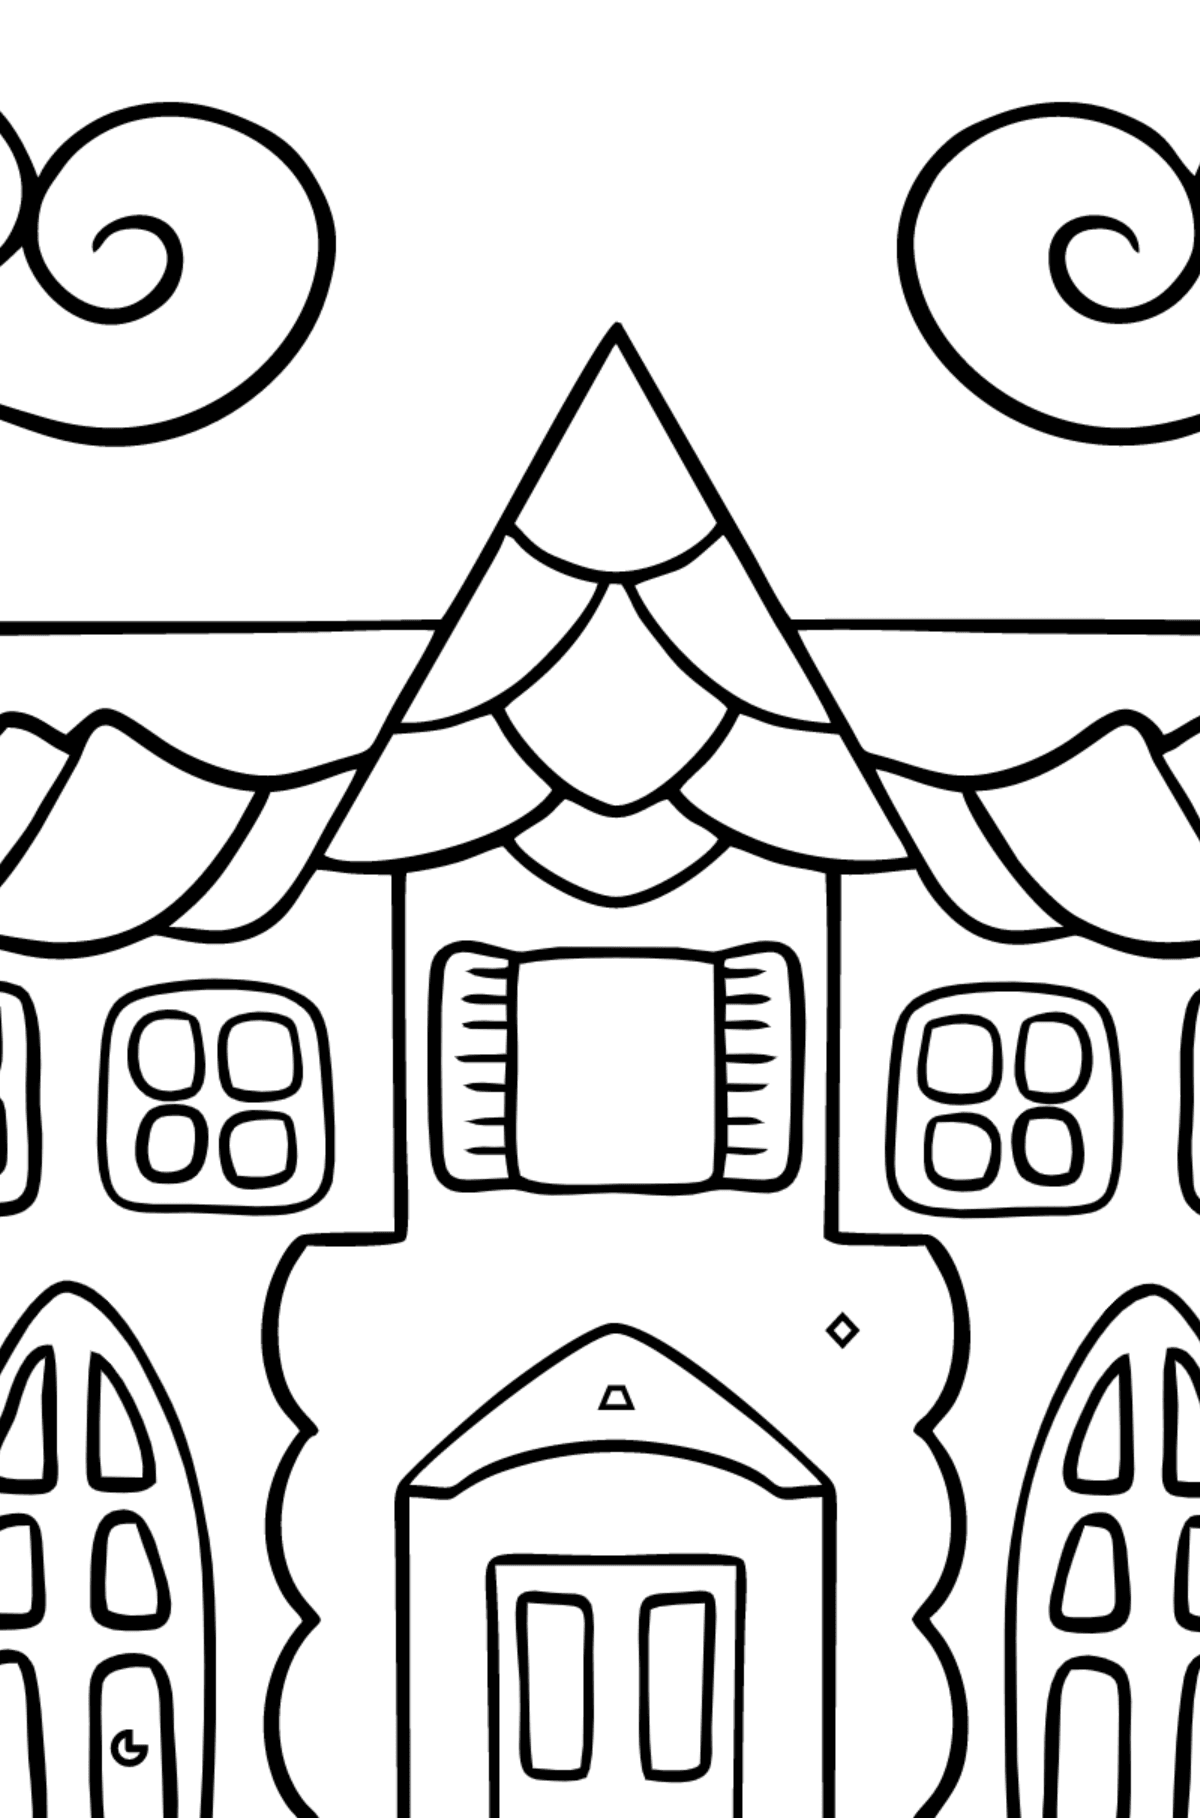 Simple Coloring Page - A House in an Enchanted Kingdom for Children  - Color by Geometric Shapes